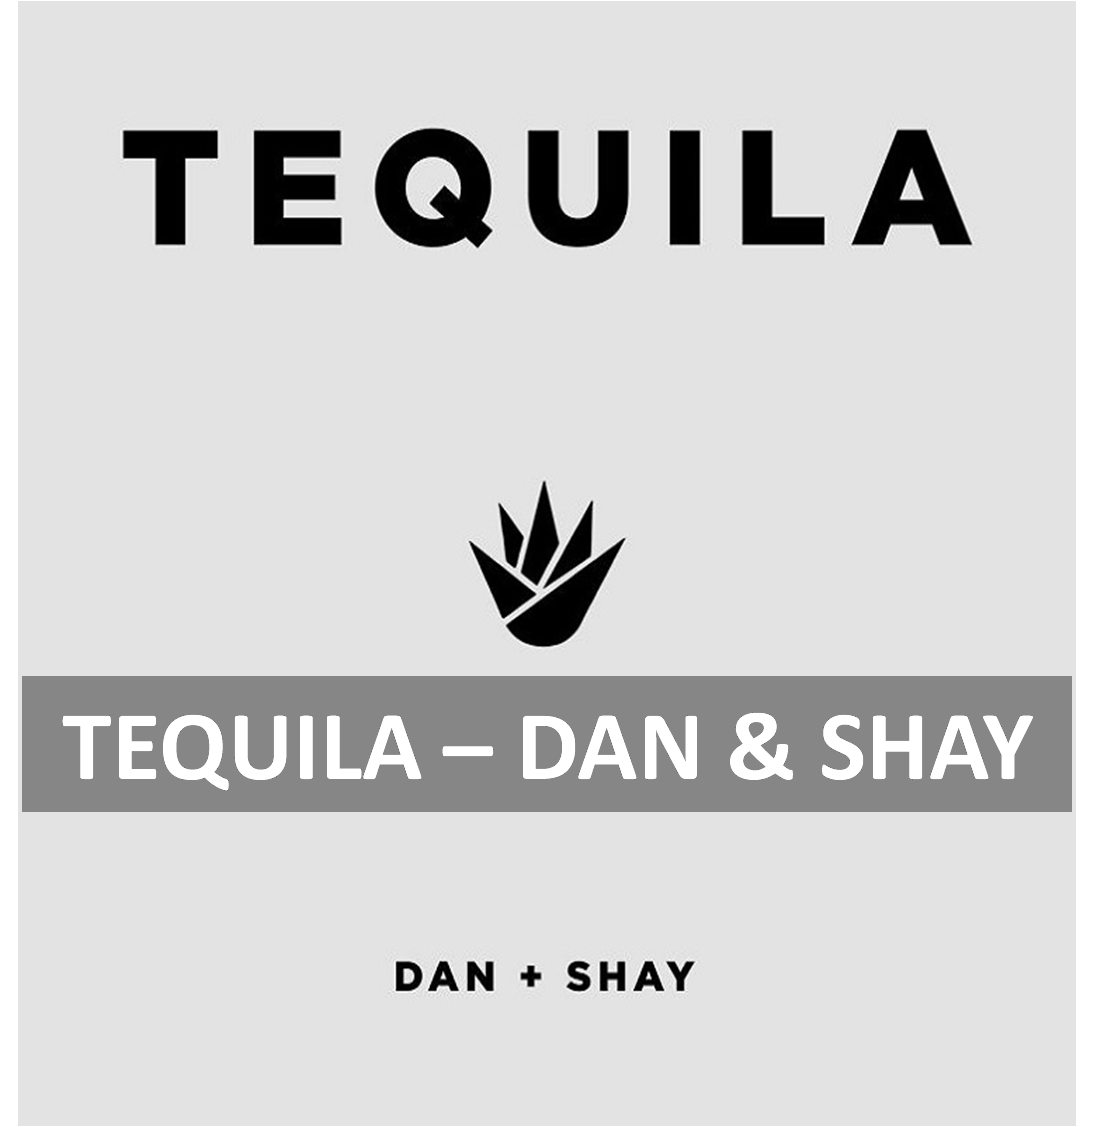 Tequila Piano Chords Lyrics Tequila Danshay Anypianolesson